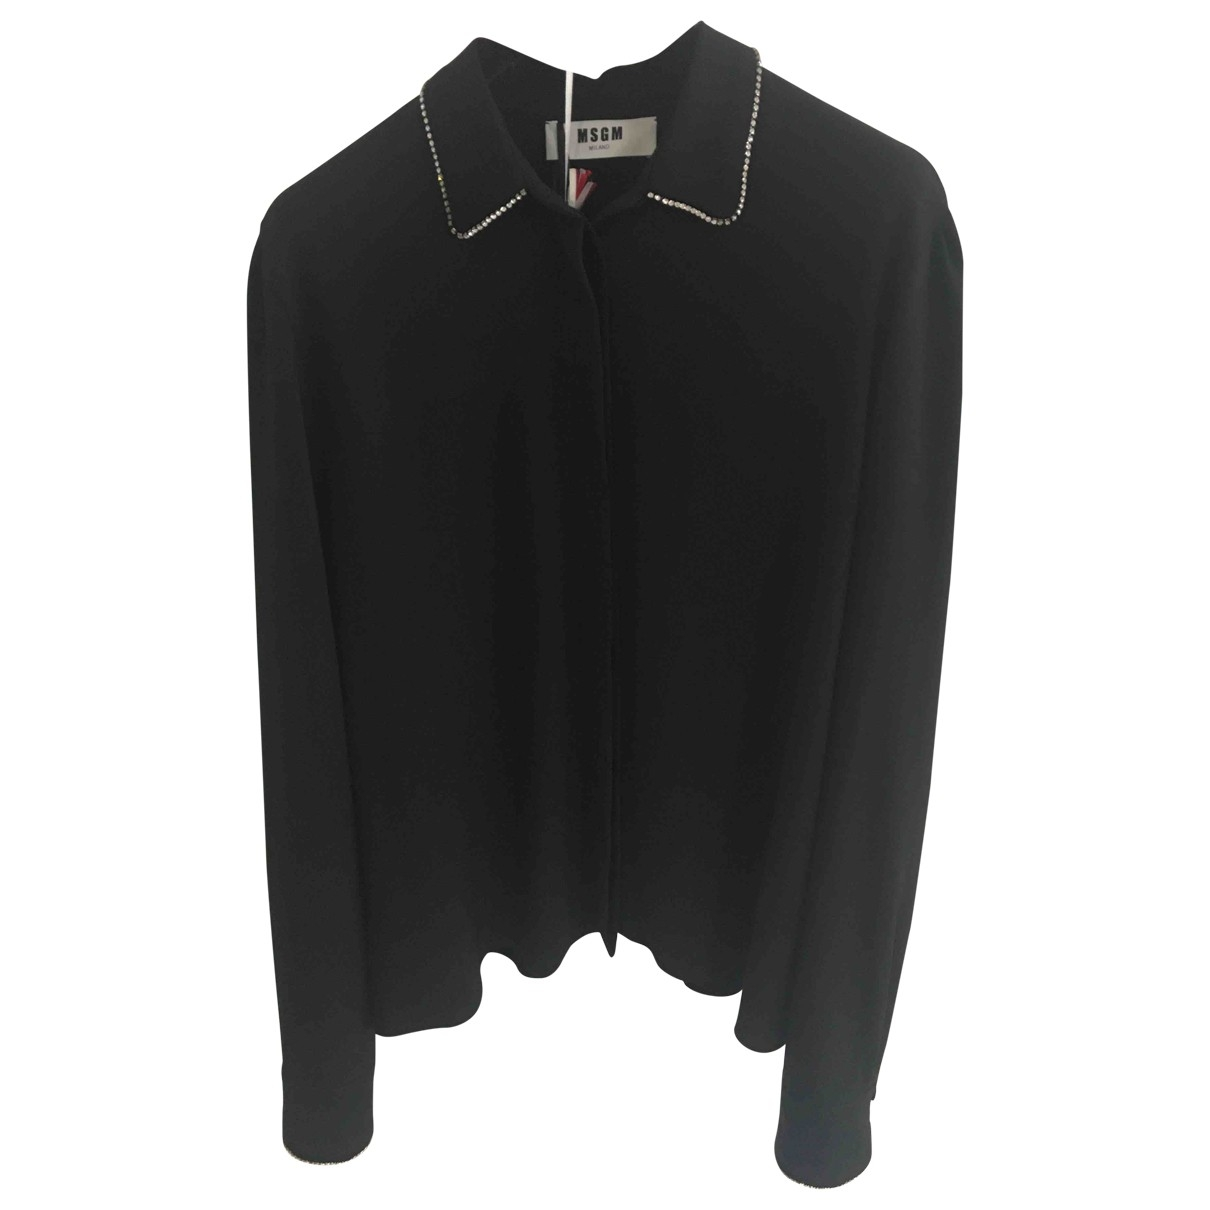 Msgm \N Black  top for Women 44 IT